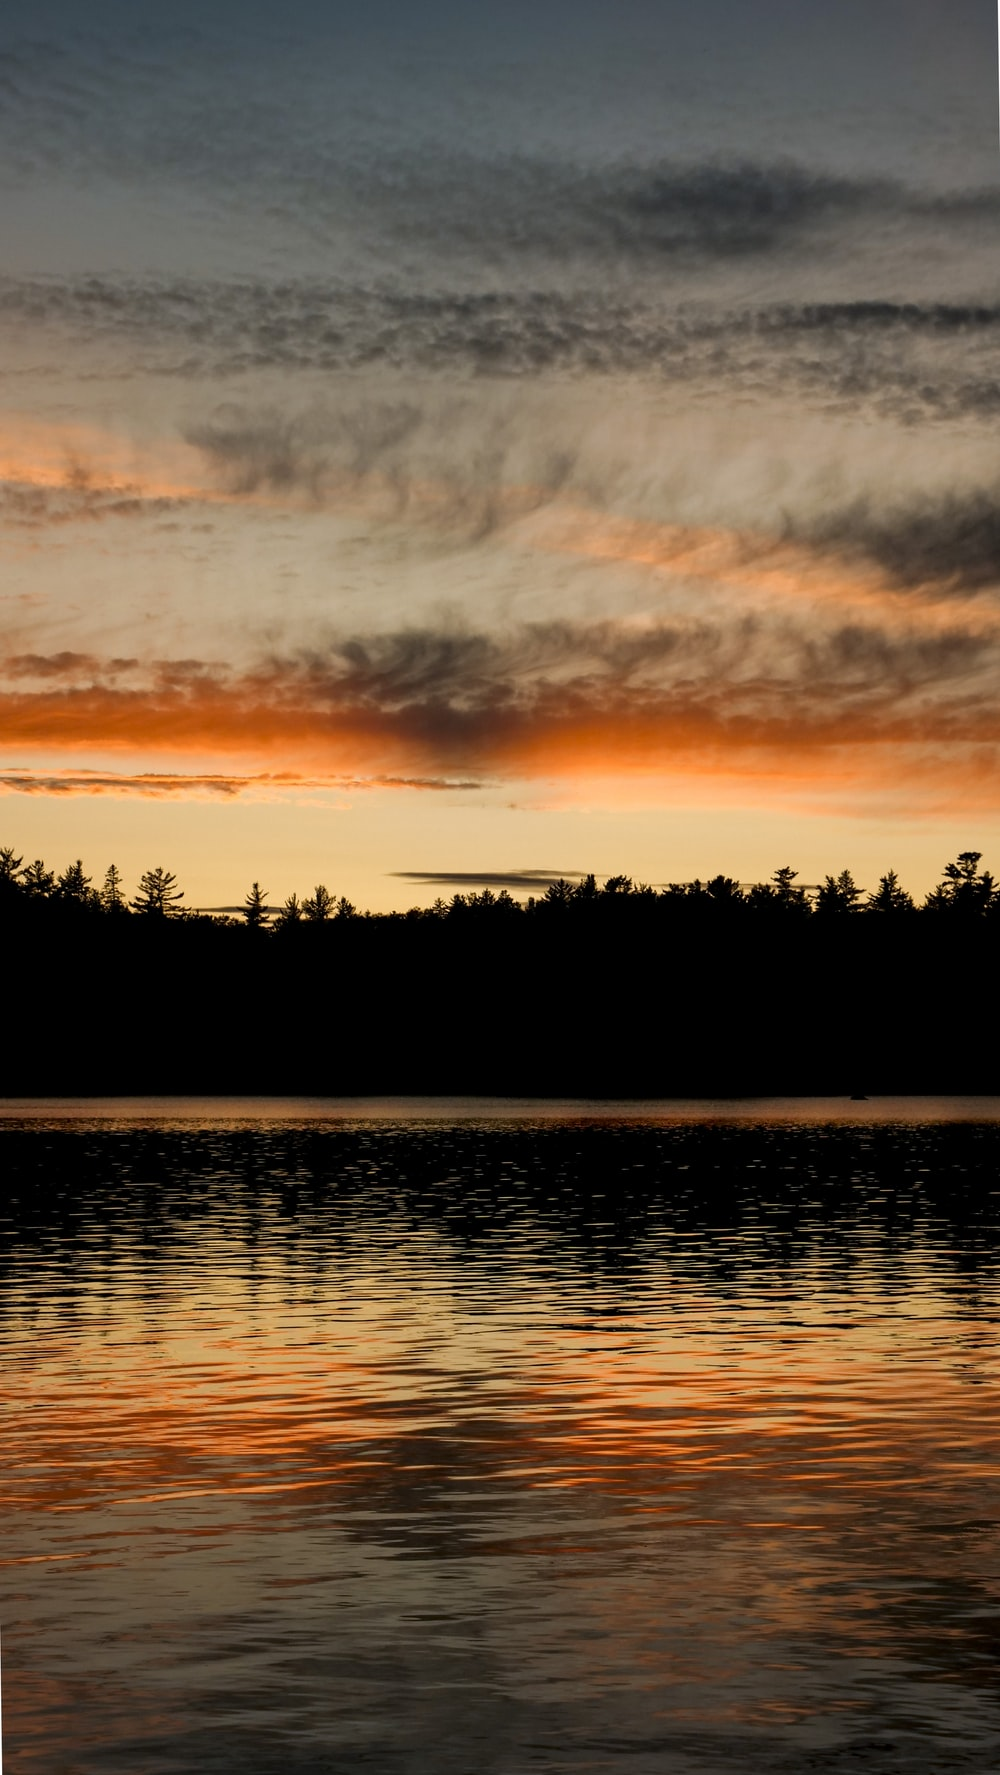 silhouette photo of trees and lake during dawn